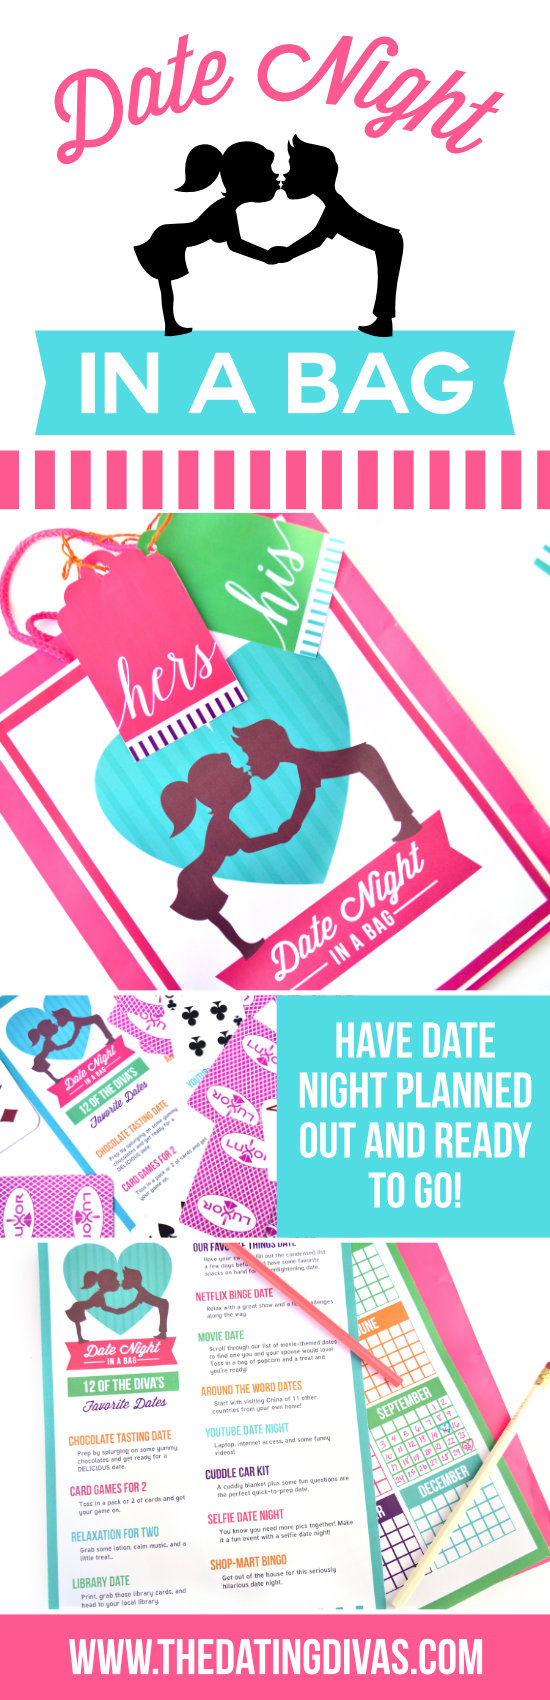 dating divas date night Let your spouse plan the perfect date night - date night request forms - the dating divas find this pin and more on date night ideas by the dating divas planning date night just got so much easier.